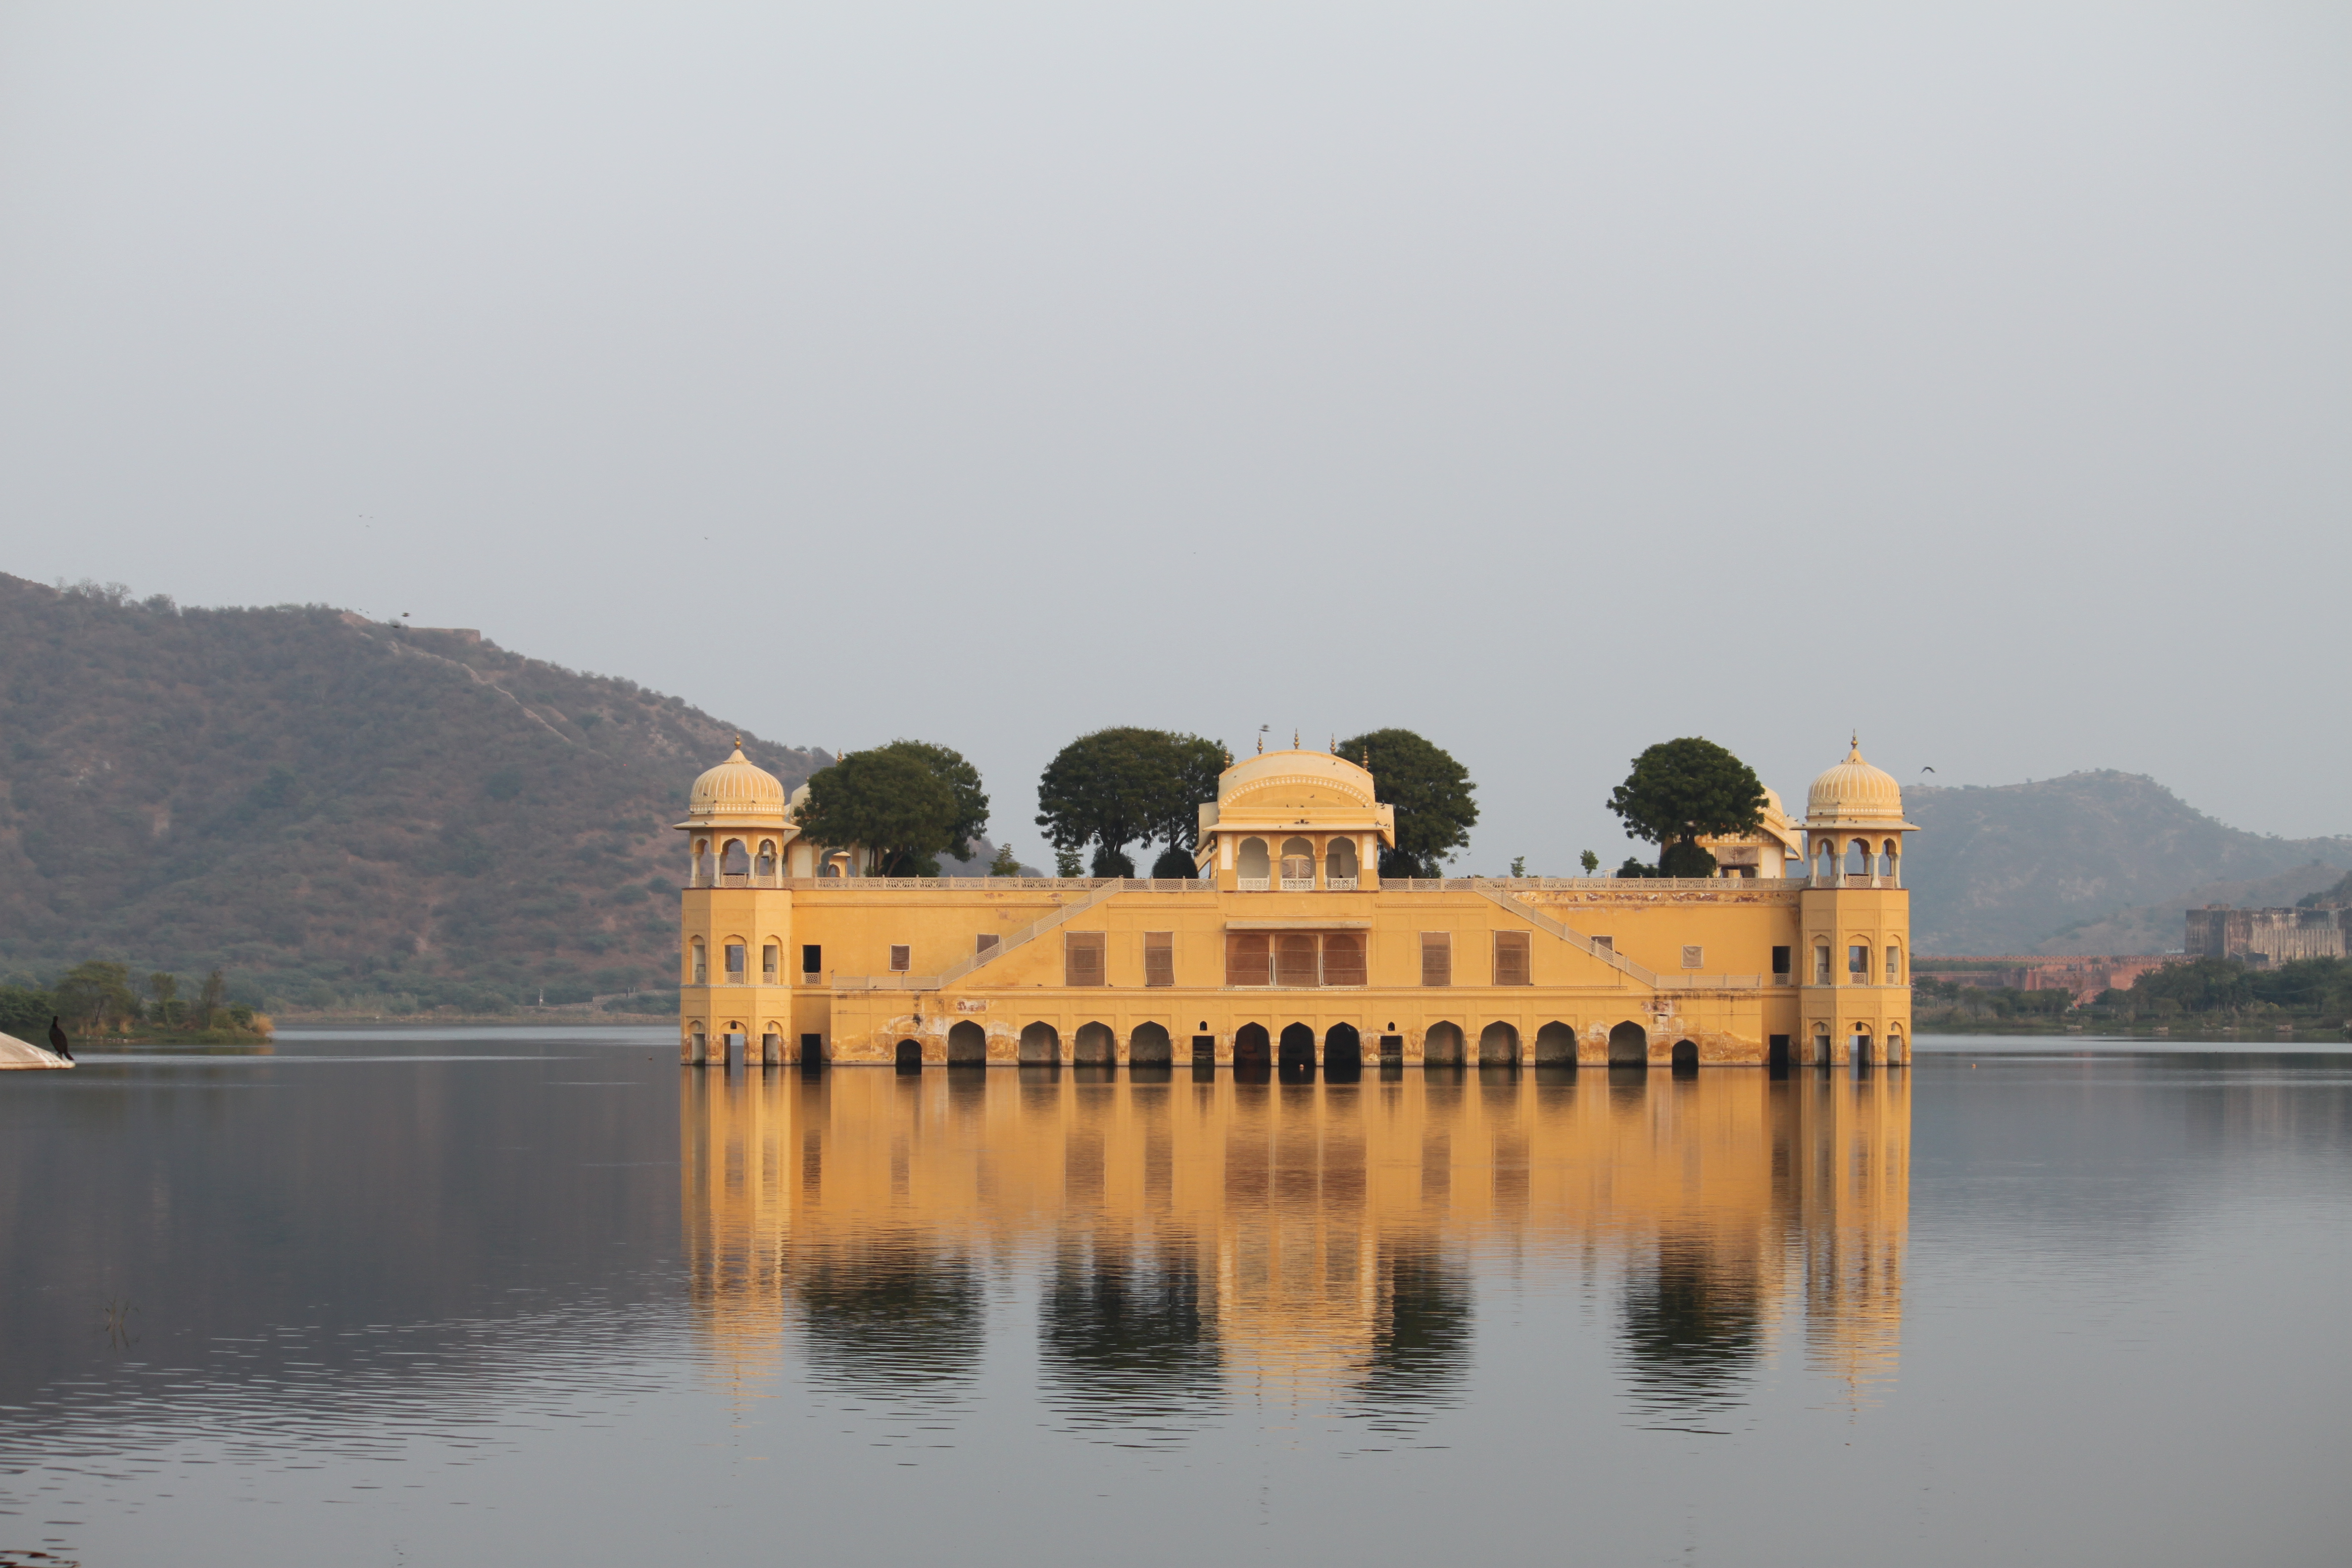 Jaipur India  city photos gallery : Jal Mahal Jaipur India Wikimedia Commons